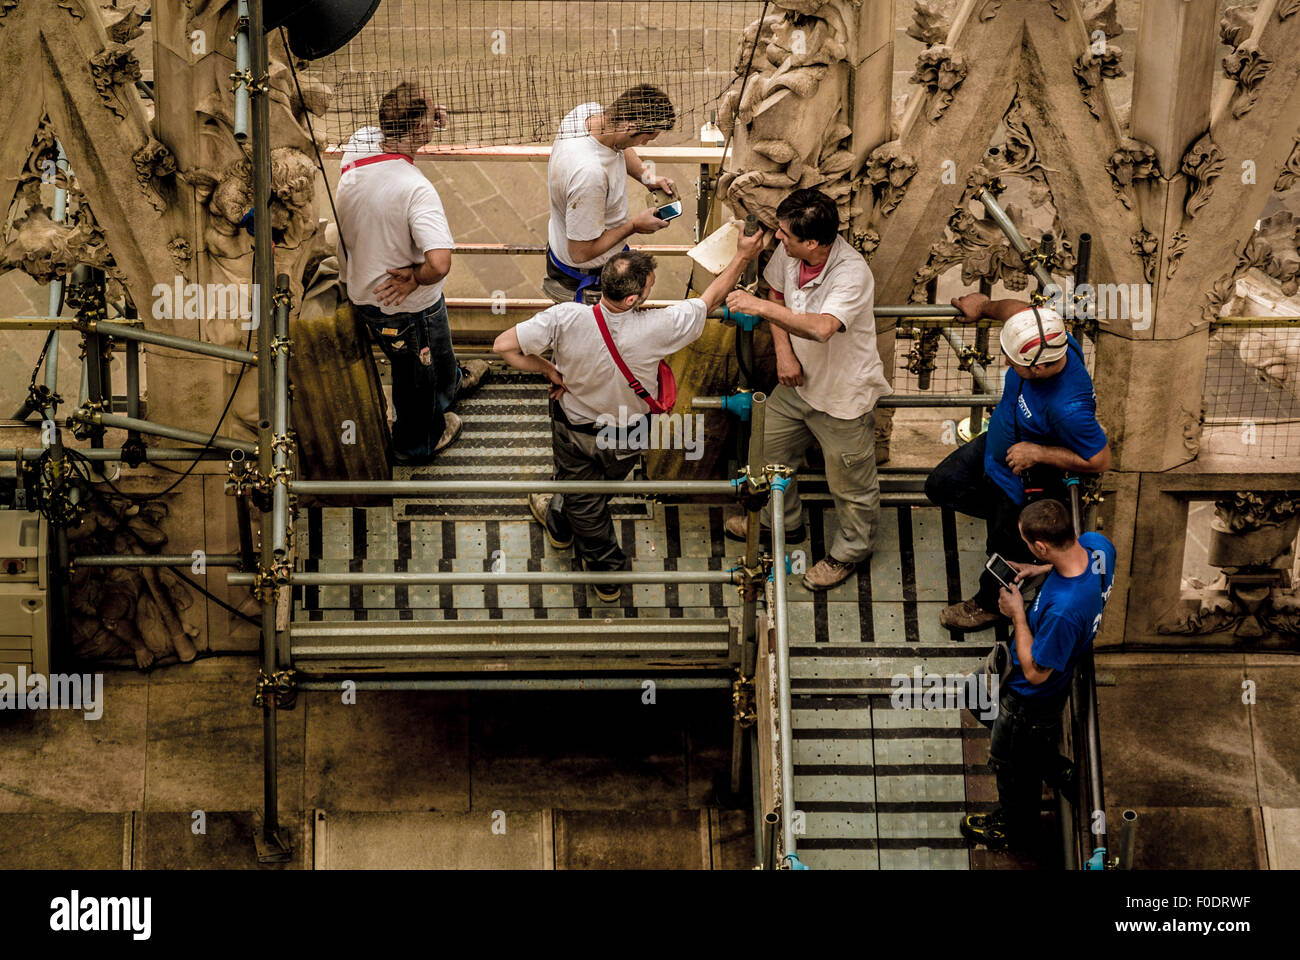 Workmen having a break on the roof of Milan Cathedral. - Stock Image